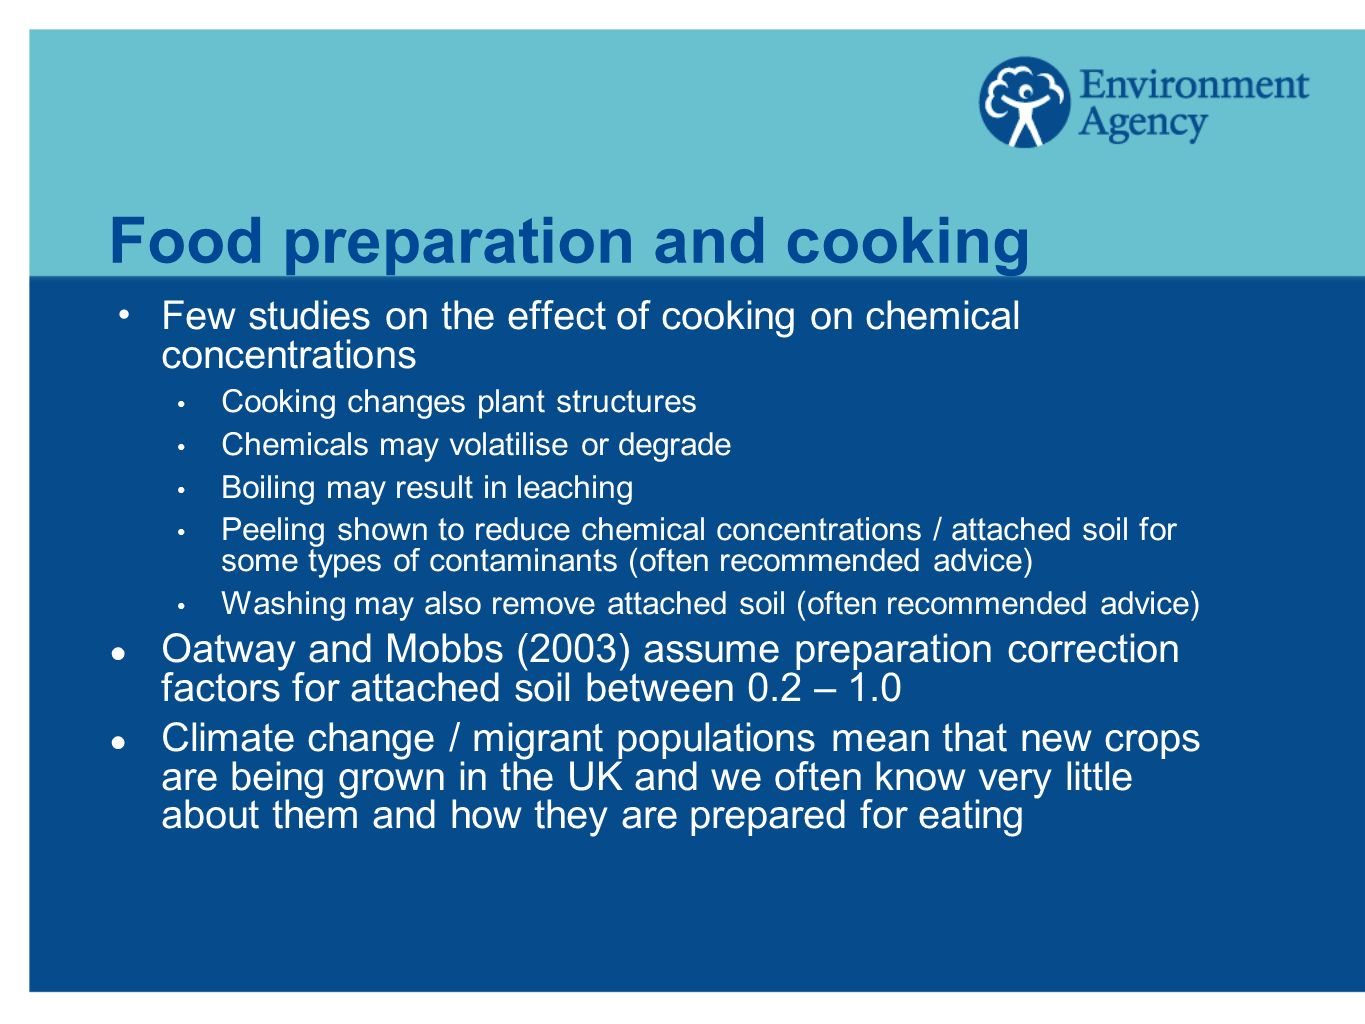 Food preparation and cooking Few studies on the effect of cooking on chemical concentrations Cooking changes plant structures Chemicals may volatilise or degrade Boiling may result in leaching Peeling shown to reduce chemical concentrations / attached soil for some types of contaminants (often recommended advice) Washing may also remove attached soil (often recommended advice) Oatway and Mobbs (2003) assume preparation correction factors for attached soil between 0.2 – 1.0 Climate change / migrant populations mean that new crops are being grown in the UK and we often know very little about them and how they are prepared for eating